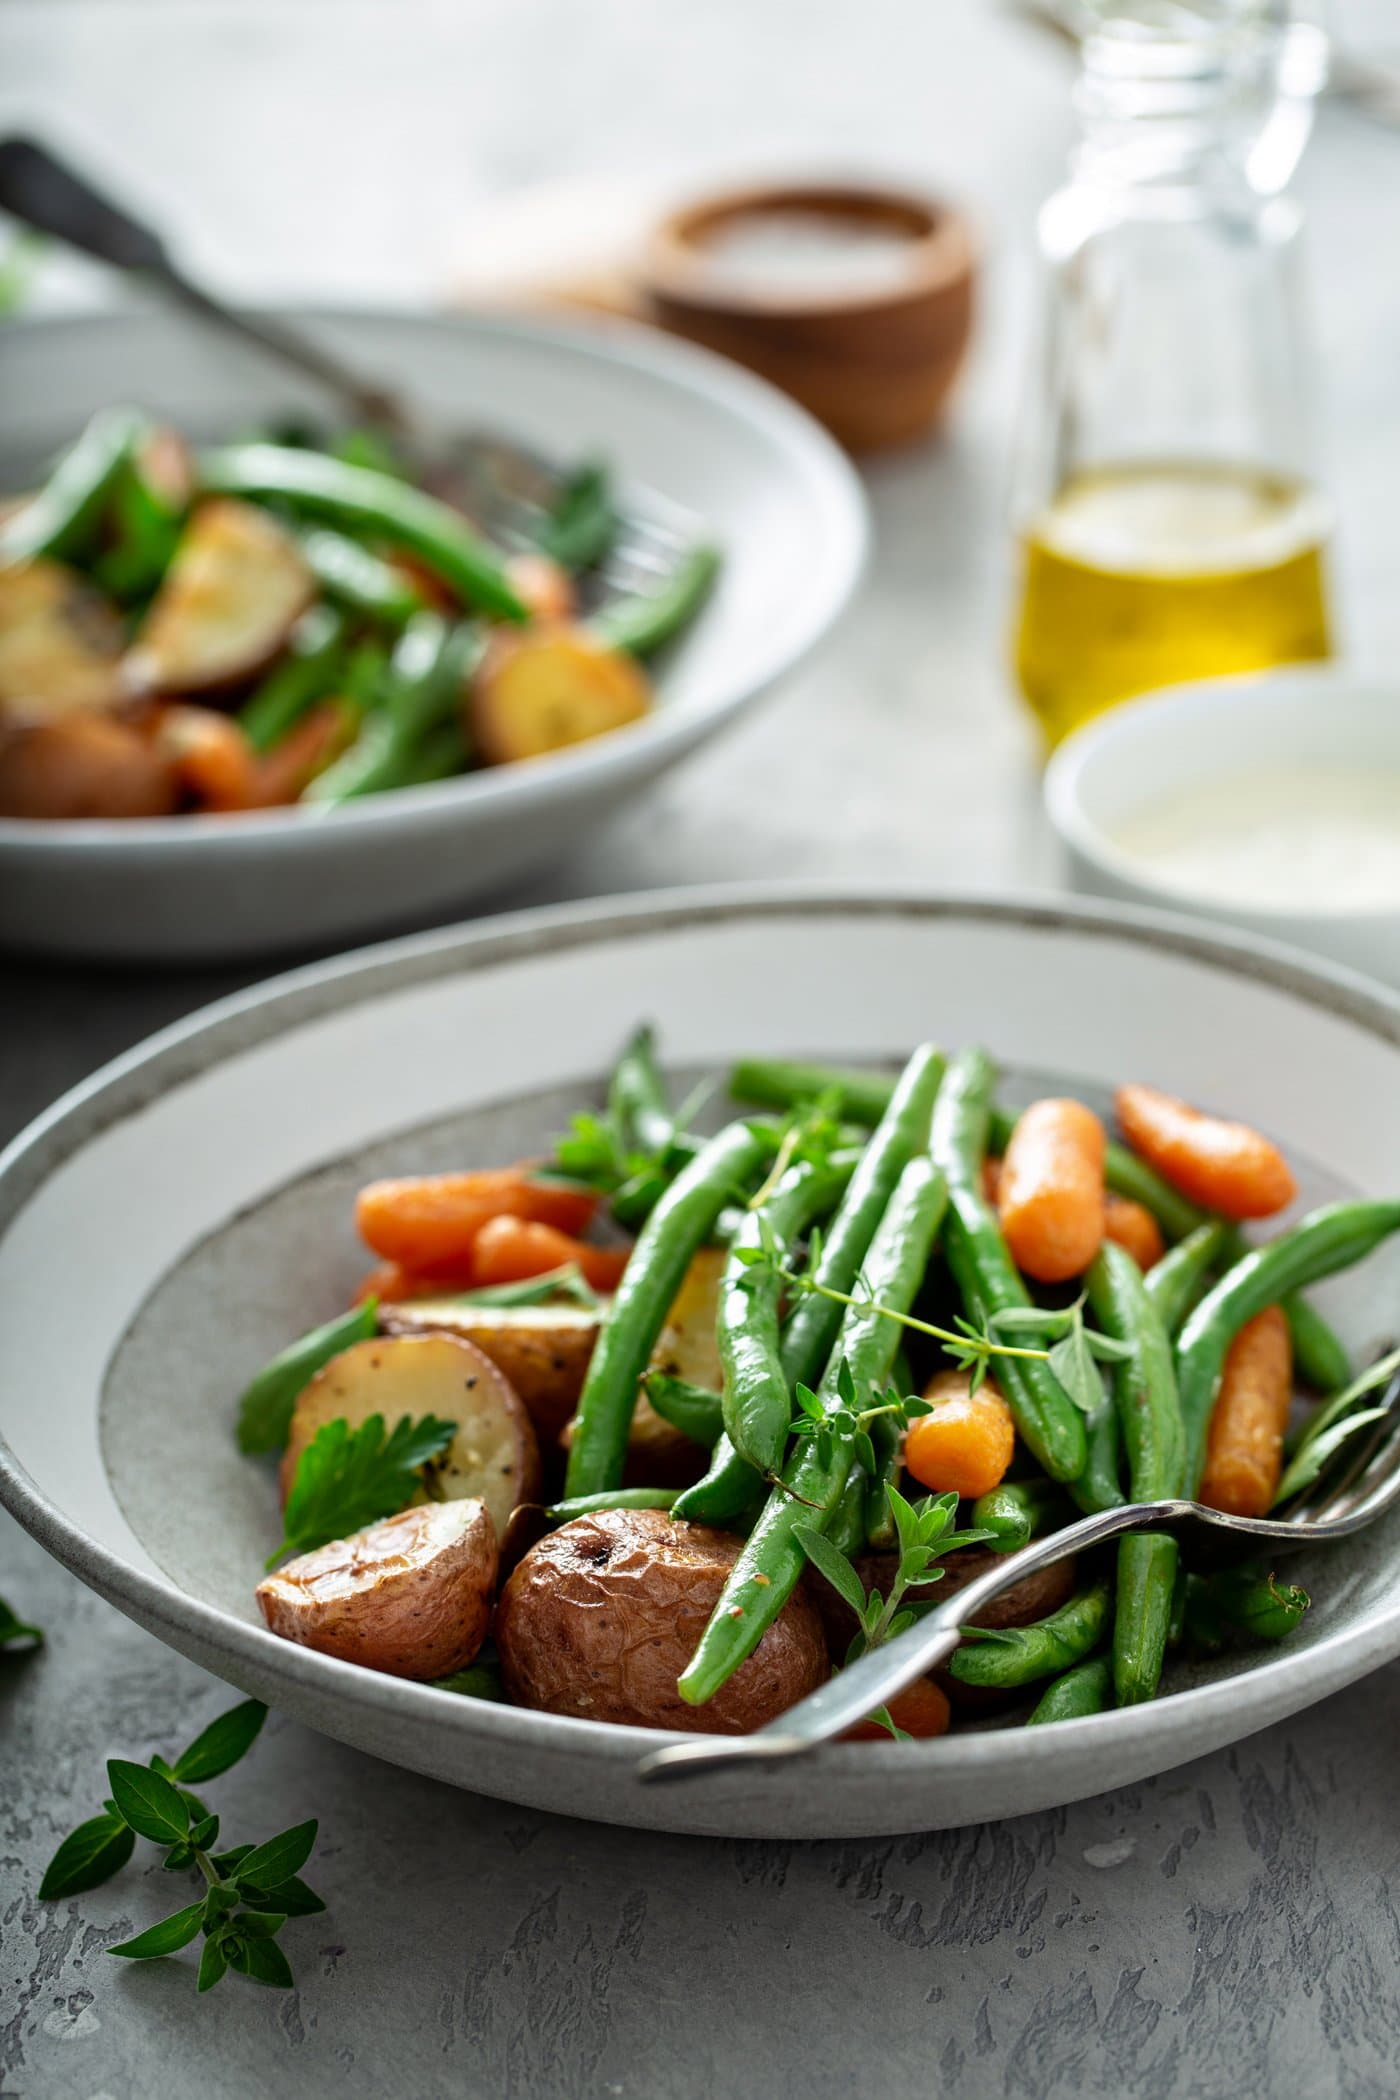 A dinner plate filled with garlic herb roasted potatoes, carrots, and green beans. A fork is resting next to the vegetables. A Serving platter of roasted vegetables, a small bowl of salt, a glass container of oil and